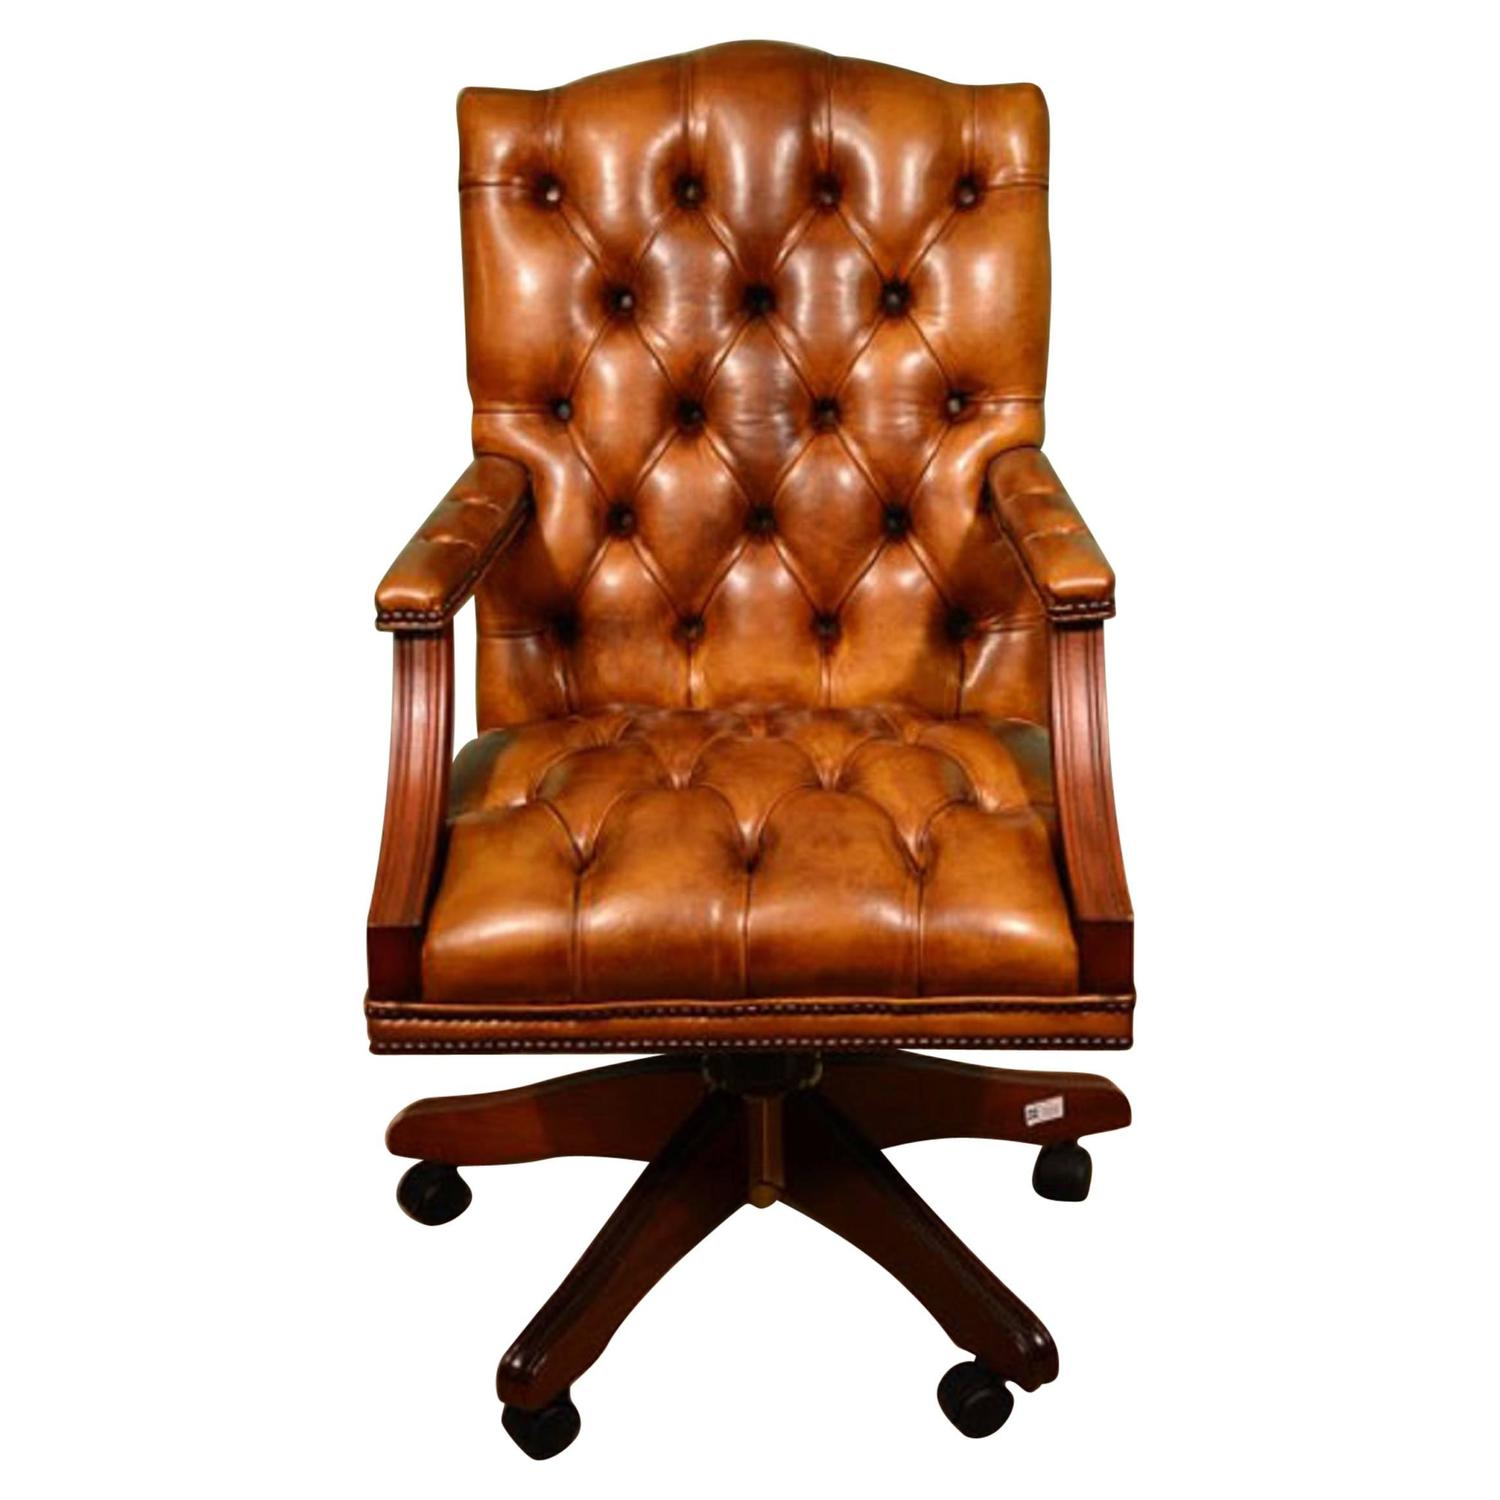 Of four chairs in oak and patinated cognac leather for sale at 1stdibs - English Handmade Gainsborough Leather Desk Chair Cognac For Sale At 1stdibs